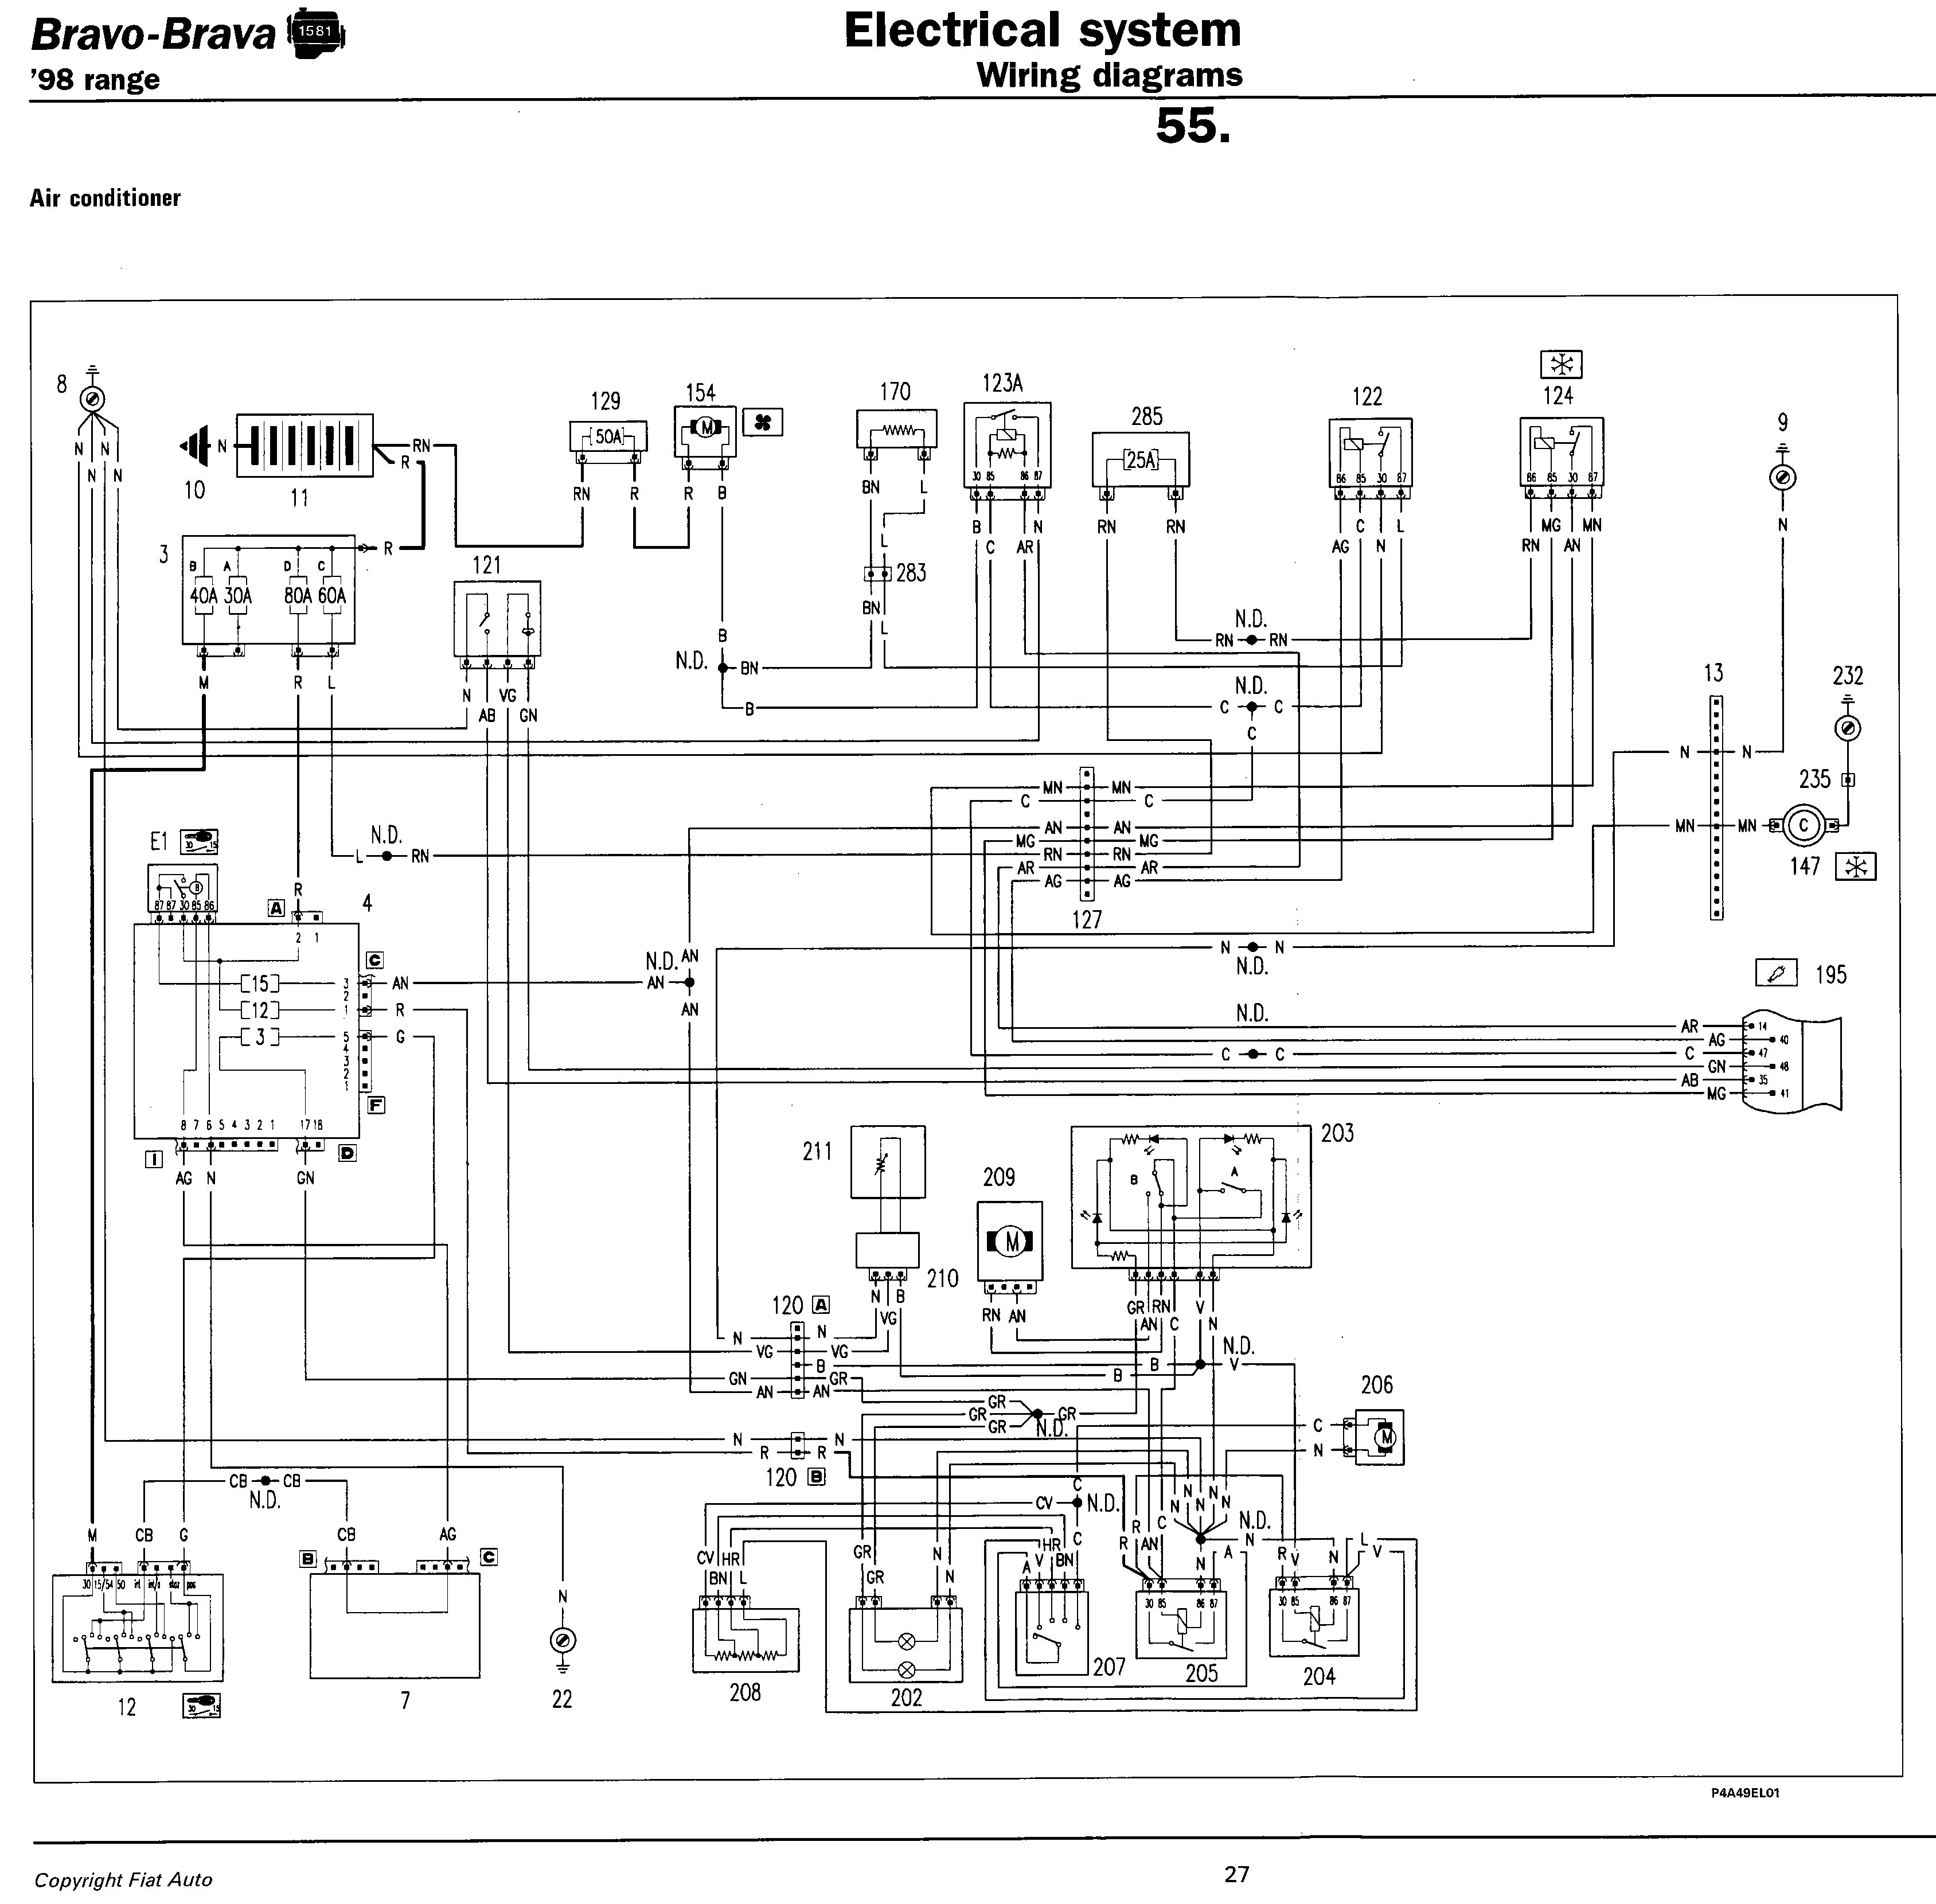 1975 fiat 124 spider wiring diagram Download-1975 fiat 124 spider wiring diagram Download fiat punto horn wiring diagram electrical drawing wiring 16-q